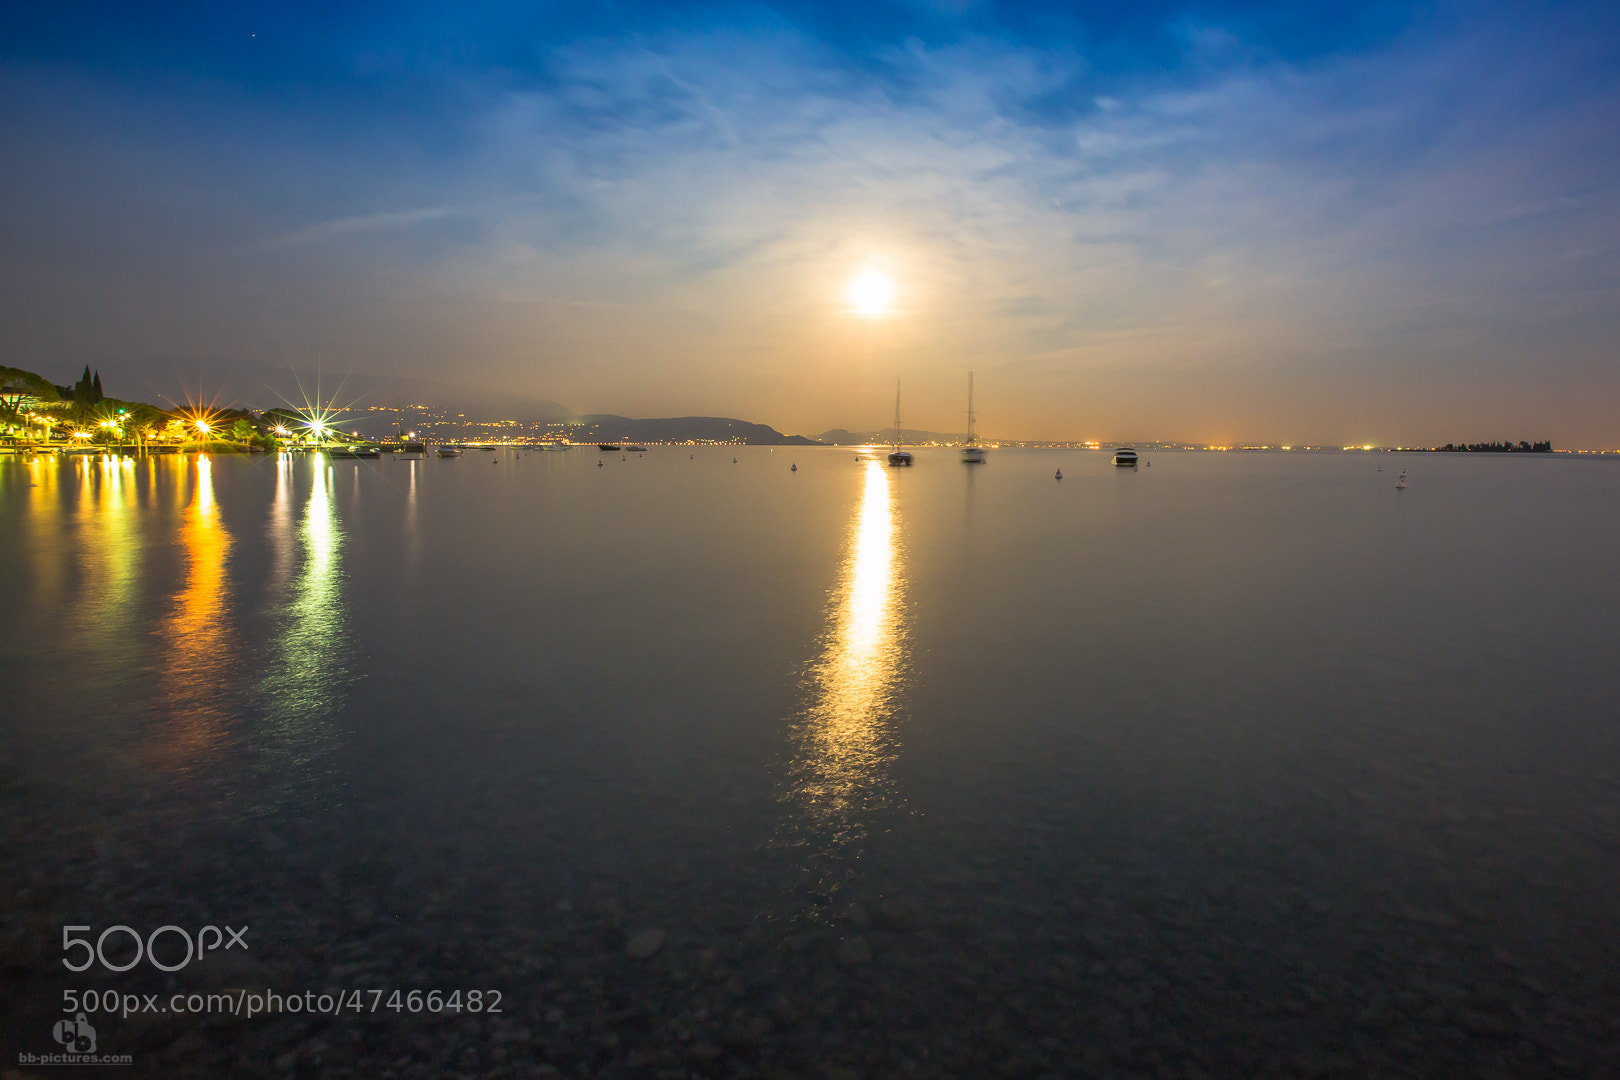 Photograph lights over lake gard by bb-pictures I bb-pictures I on 500px